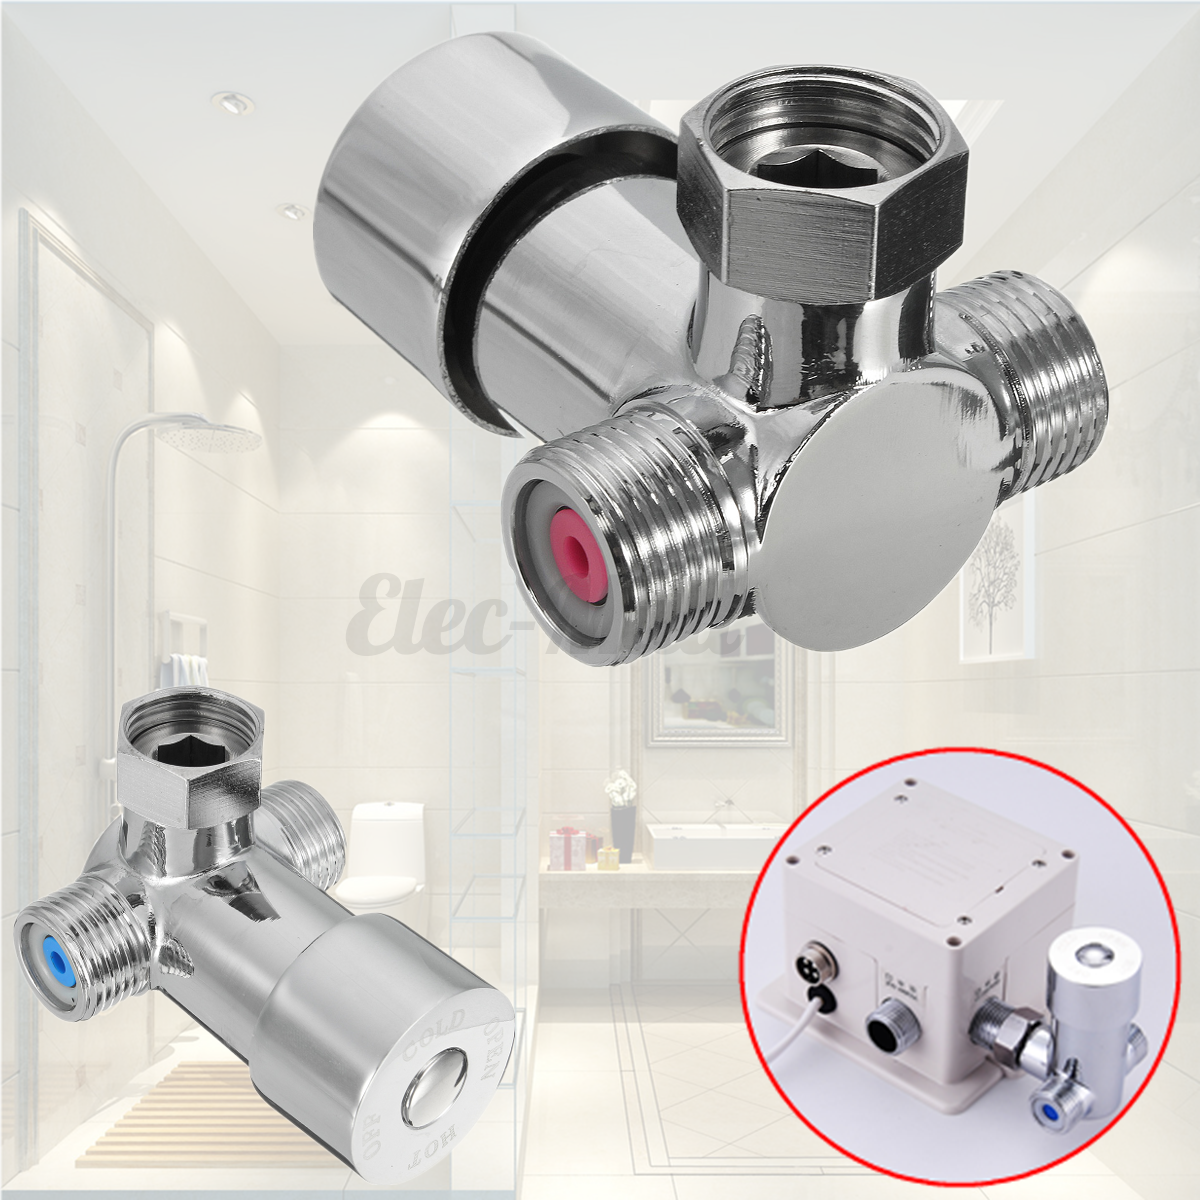 Hot Cold Water Mixing Valve For Sensor Faucet Thermostatic